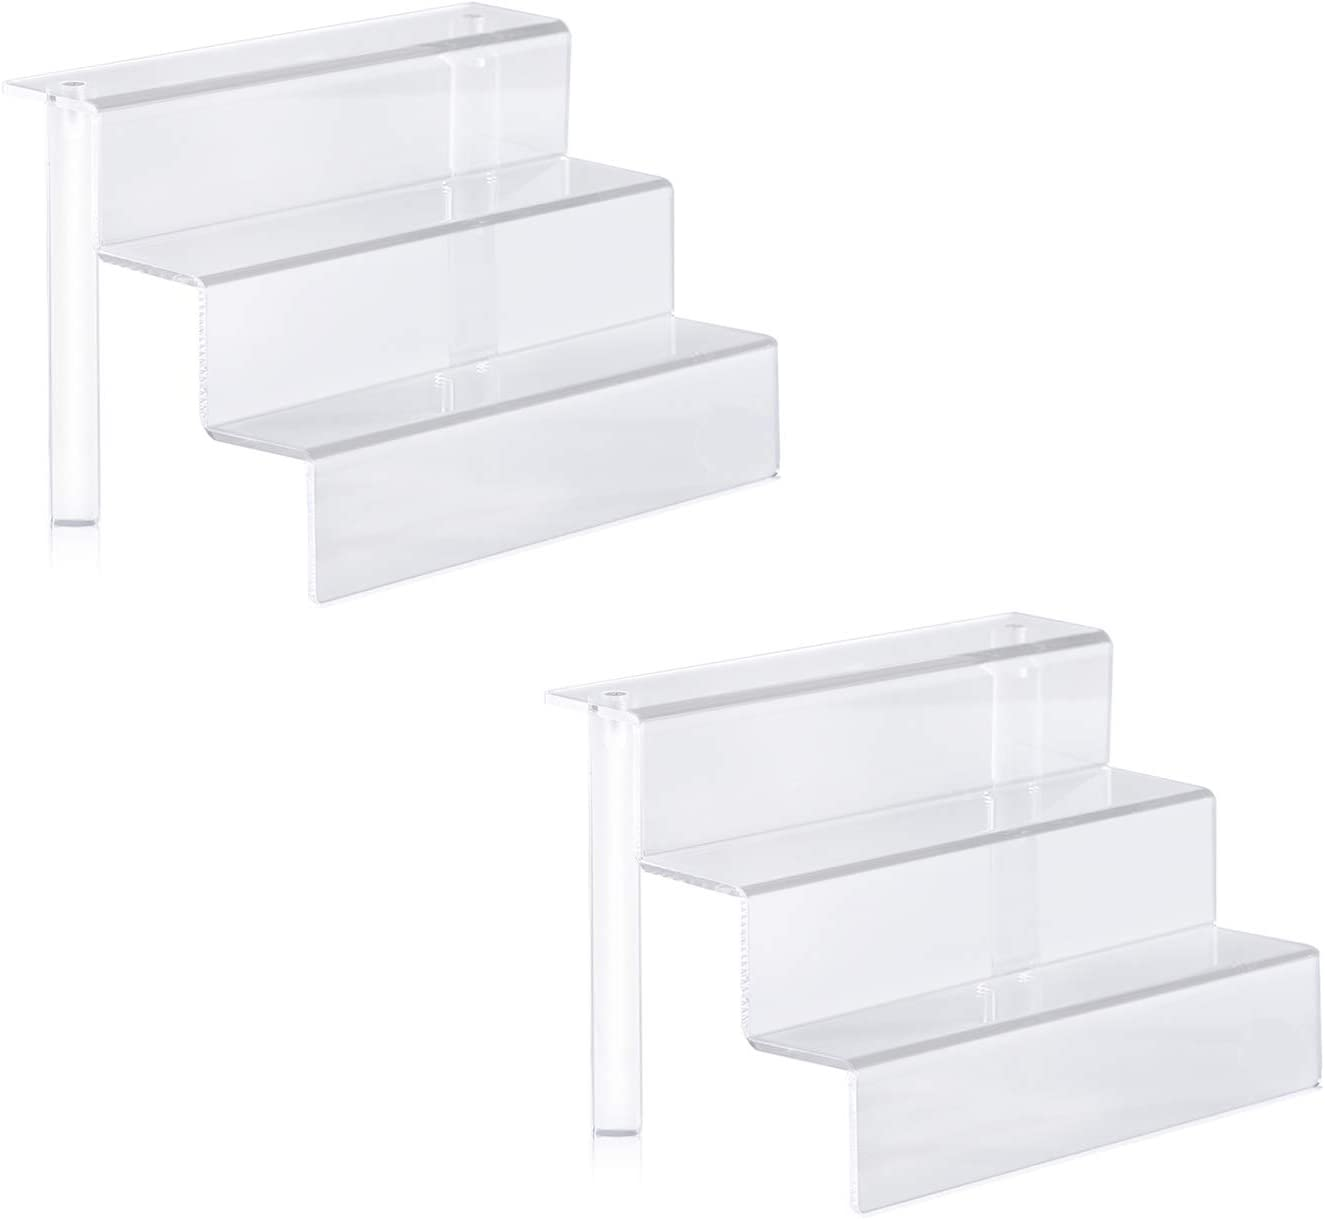 Winkine Acrylic Display Shelf, 2 Pack Acrylic Display Makeup Stands 3 Tier Acrylic Riser Displays, Clear Display Shelf Organizer for Cabinet, Countertops, Tabletop Desktop